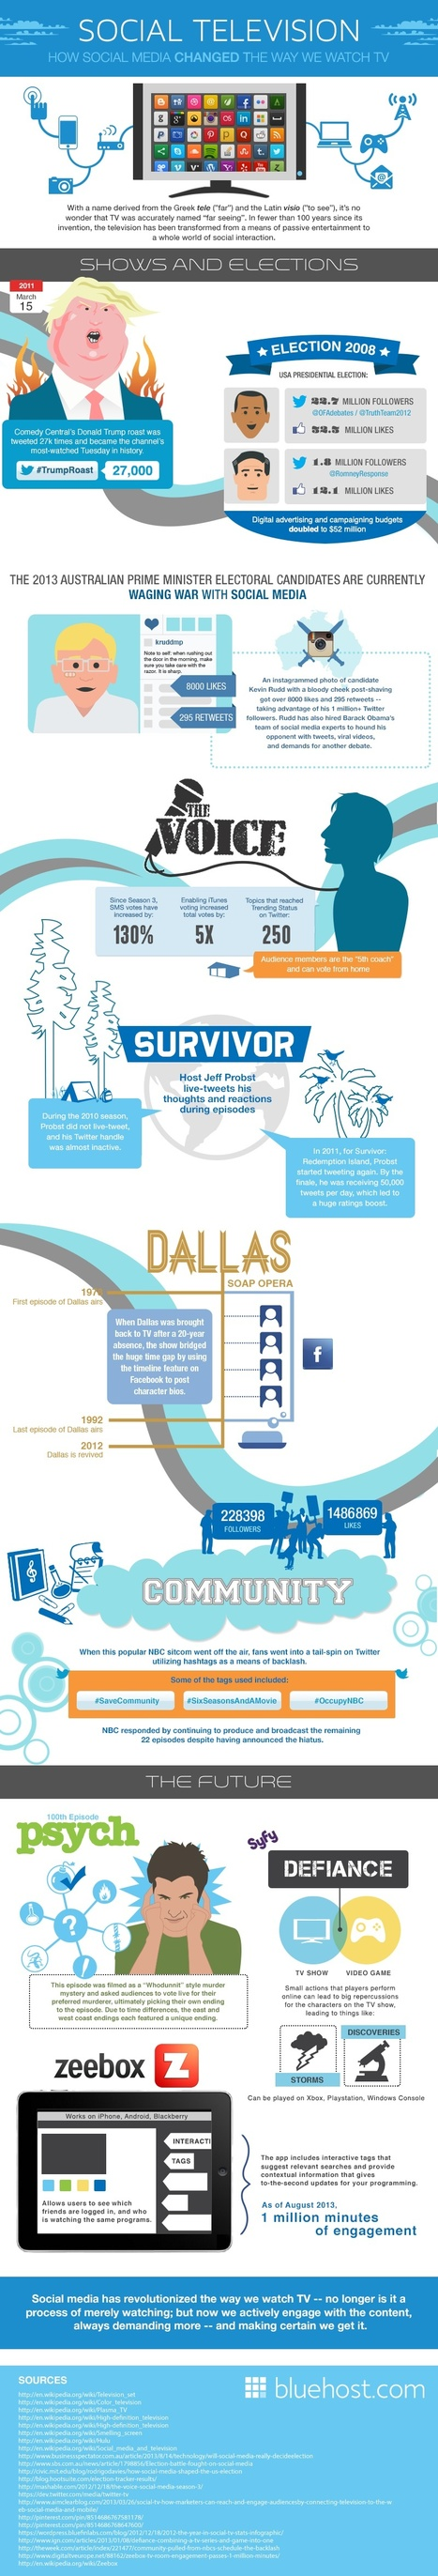 How Social Media Has Changed The Way We Watch TV [INFOGRAPHIC] | Evolving Social Media: Good or Bad | Scoop.it